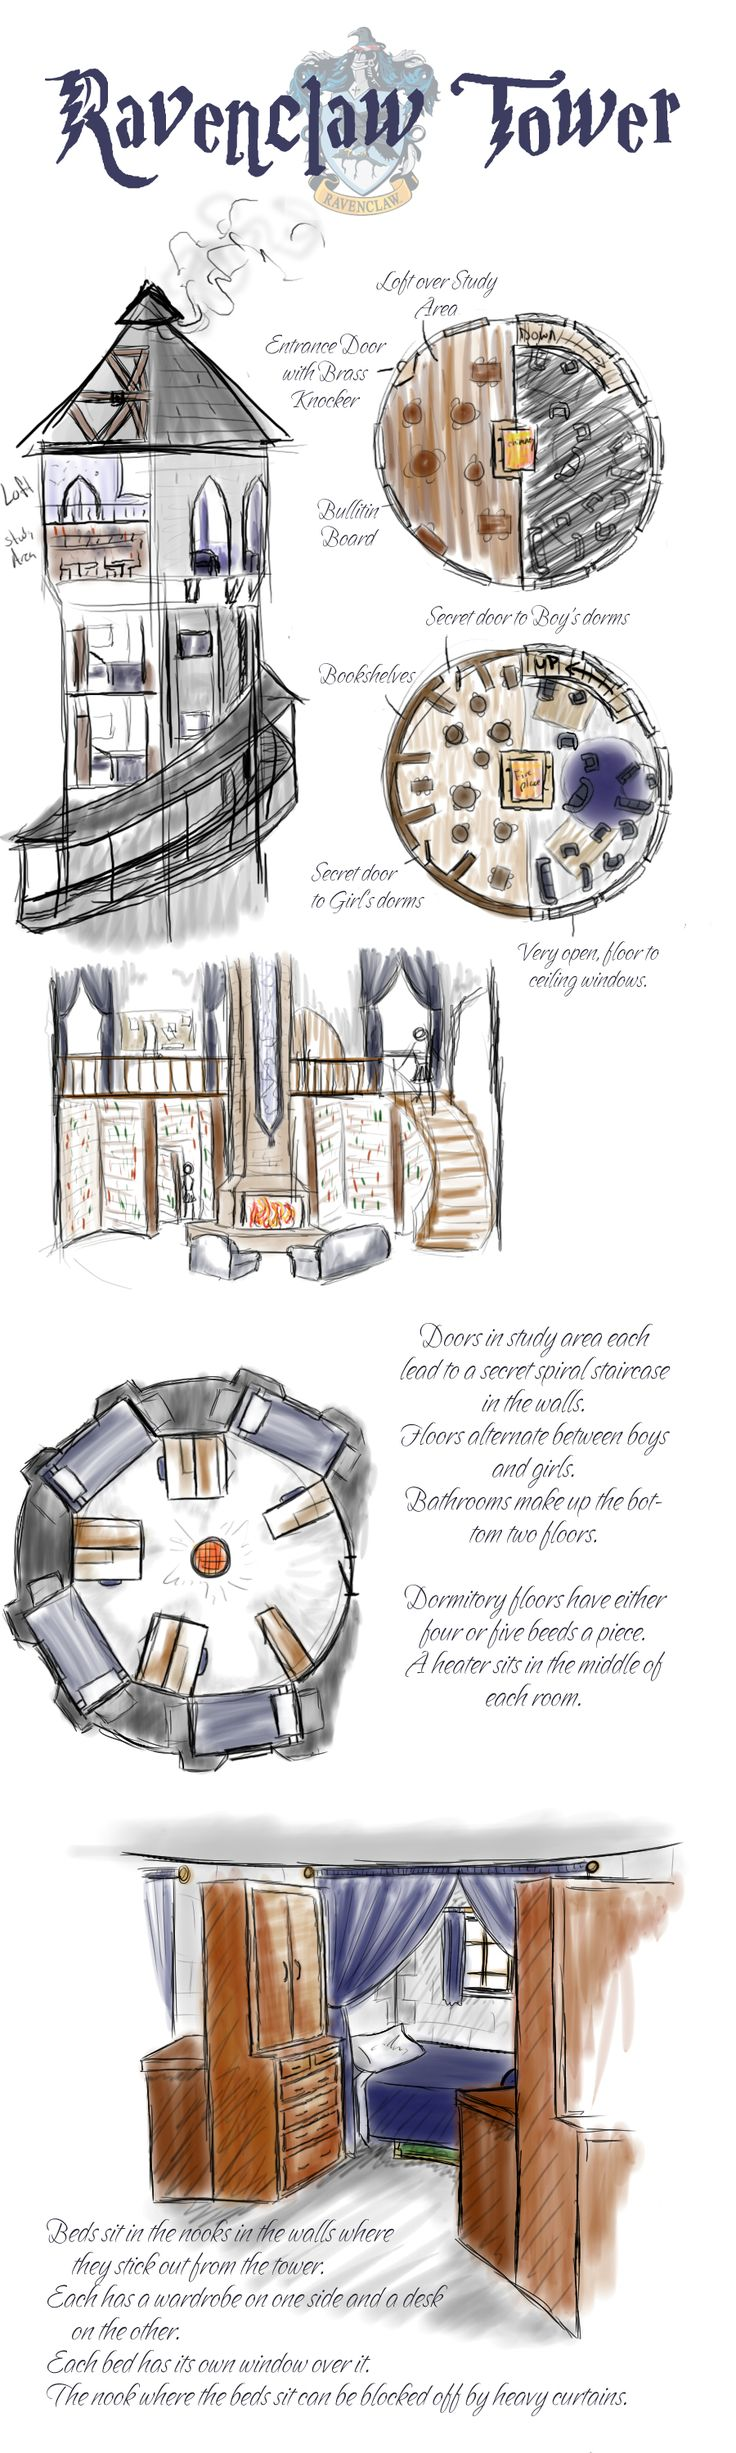 Ravenclaw Tower by *Whisperwings on deviantART there are drawings of all of the Hogwarts houses. Super cool.